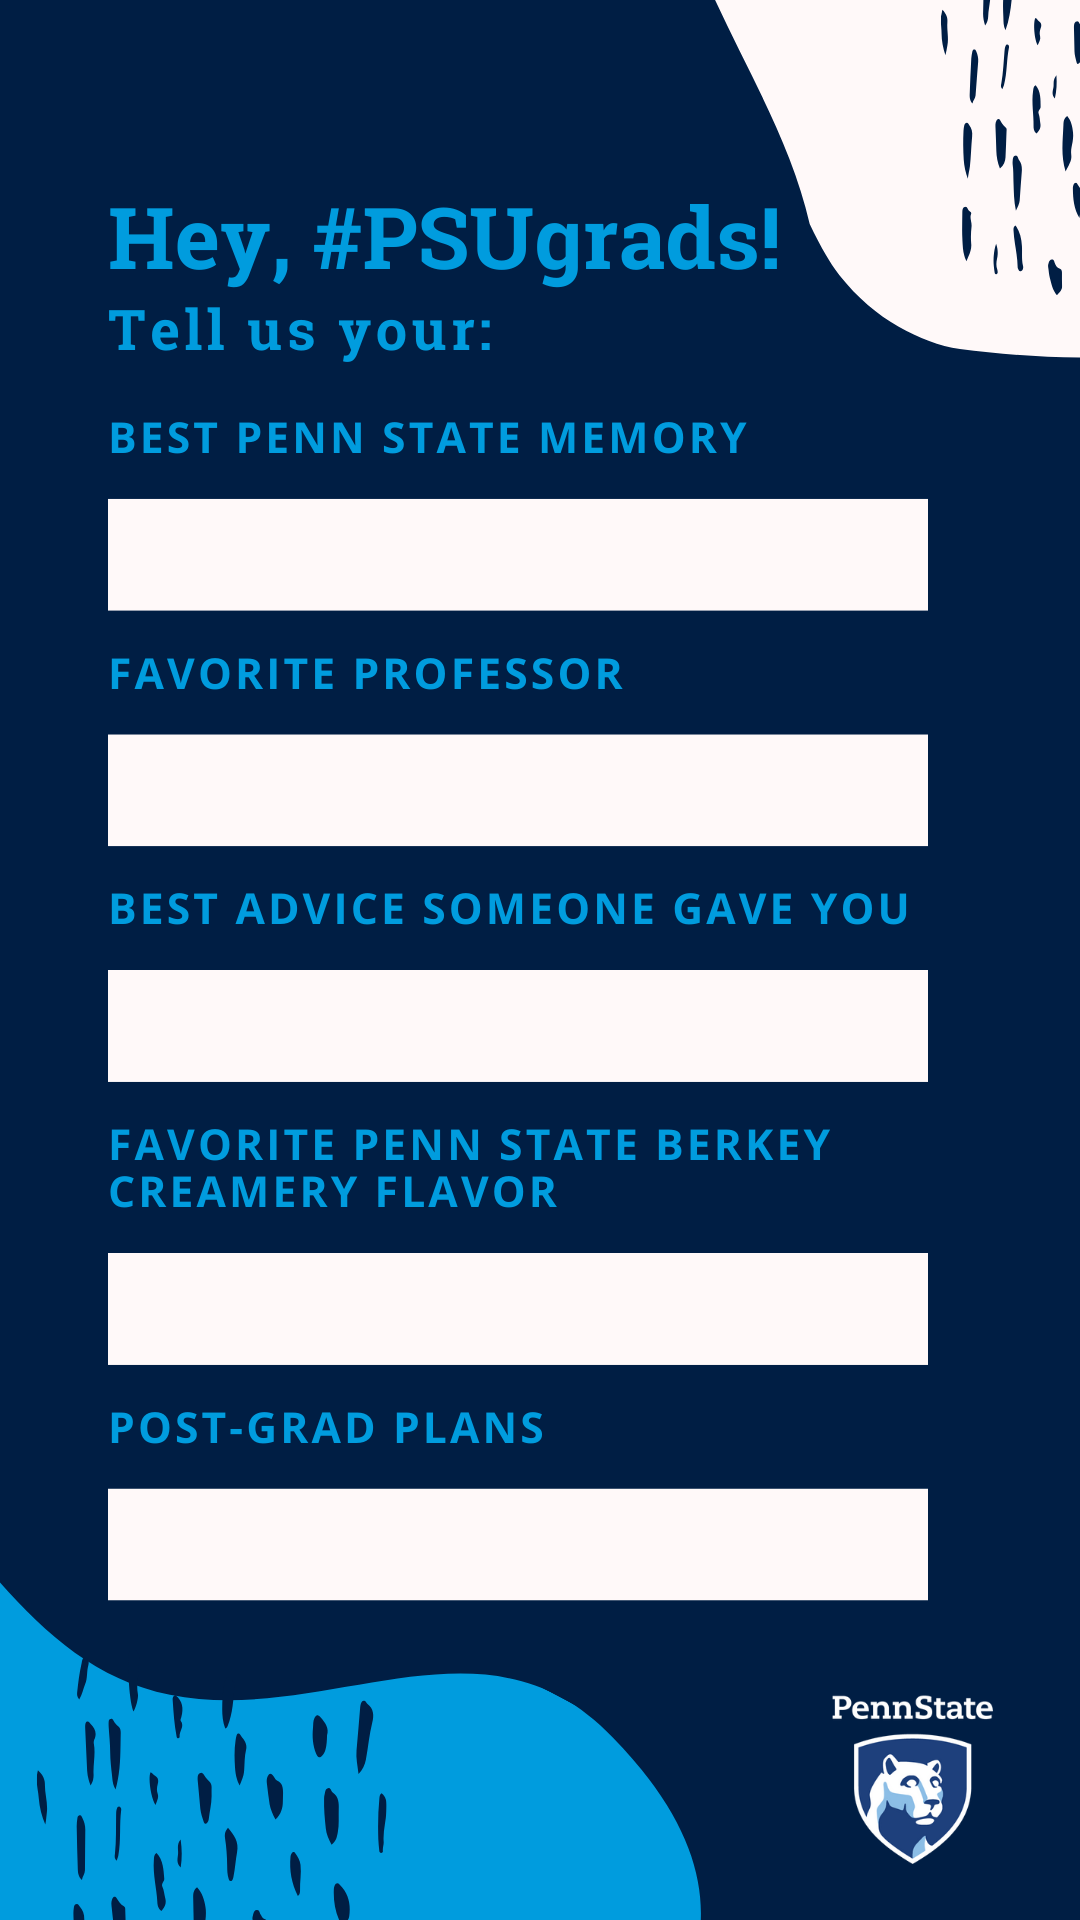 IG Story Template PSUgrad Favorites